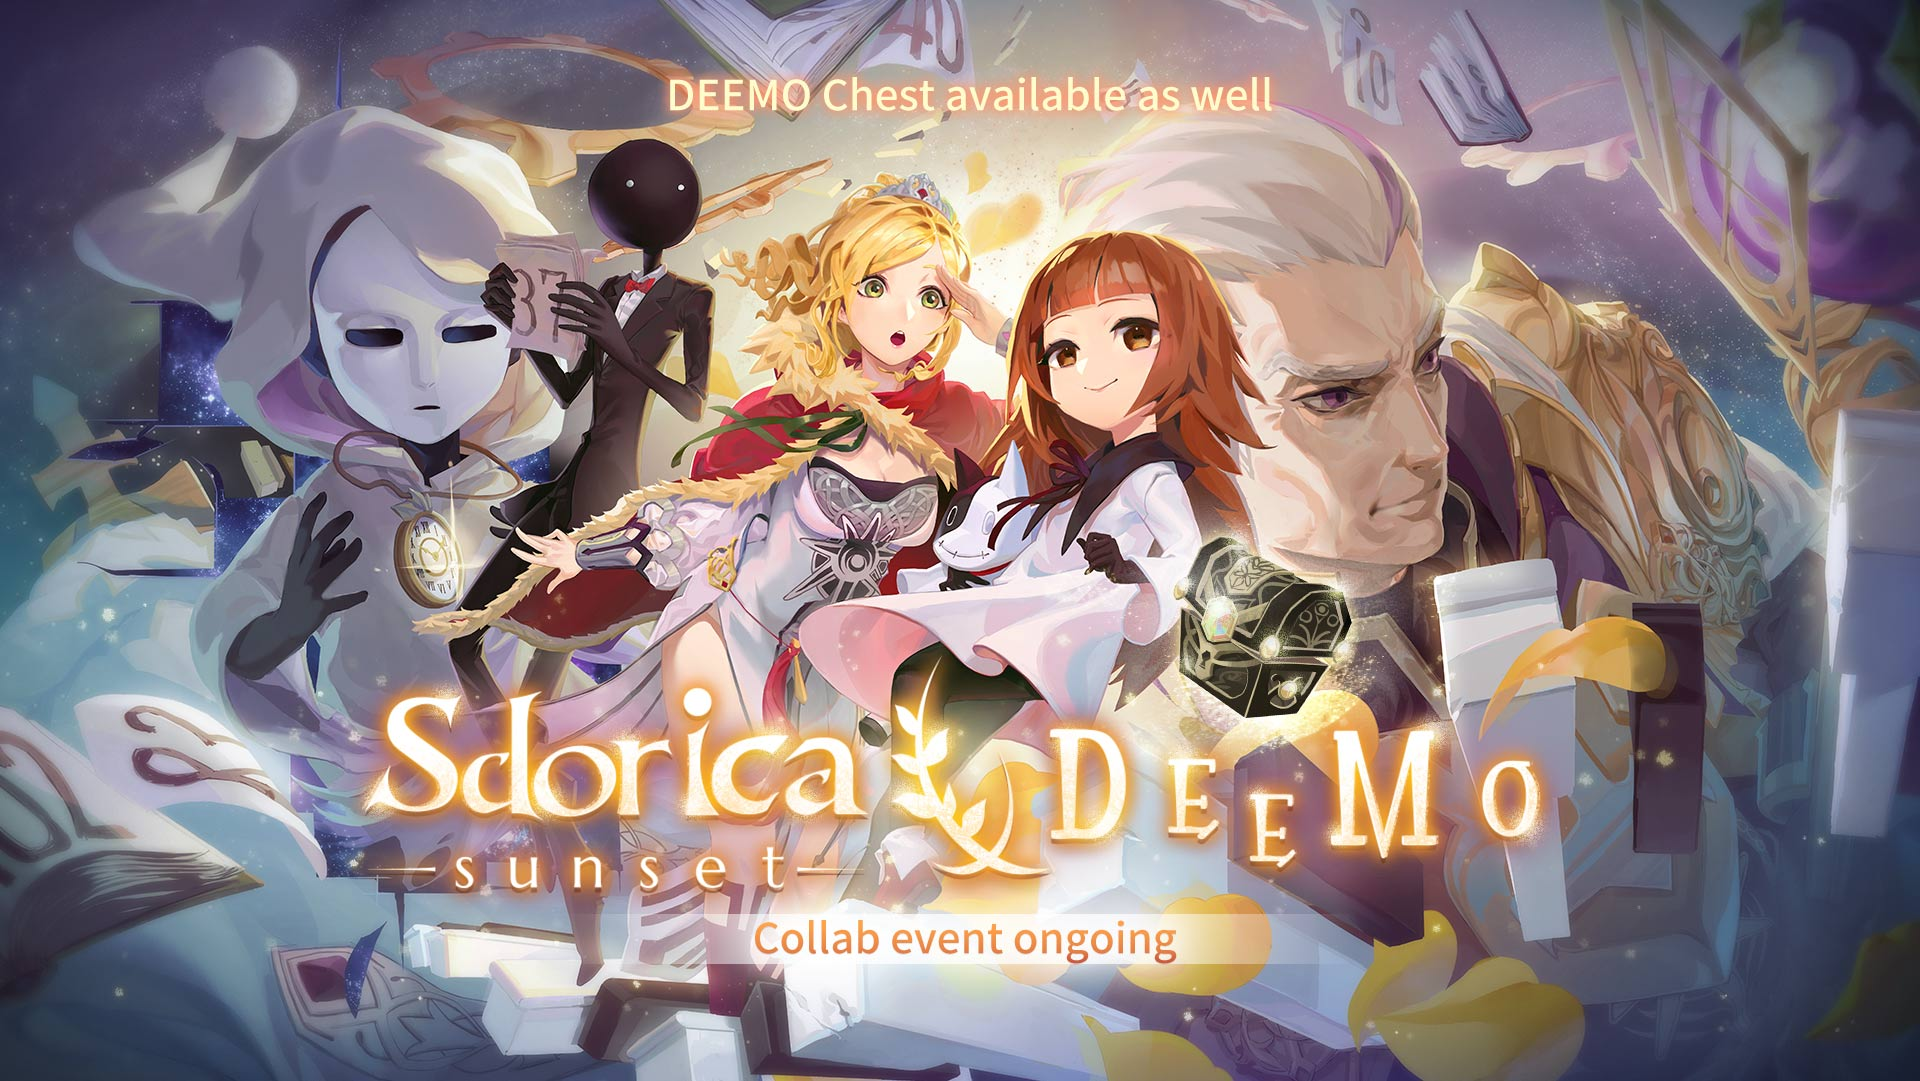 60583e9c Sdorica -sunset-'s first collaboration with DEEMO